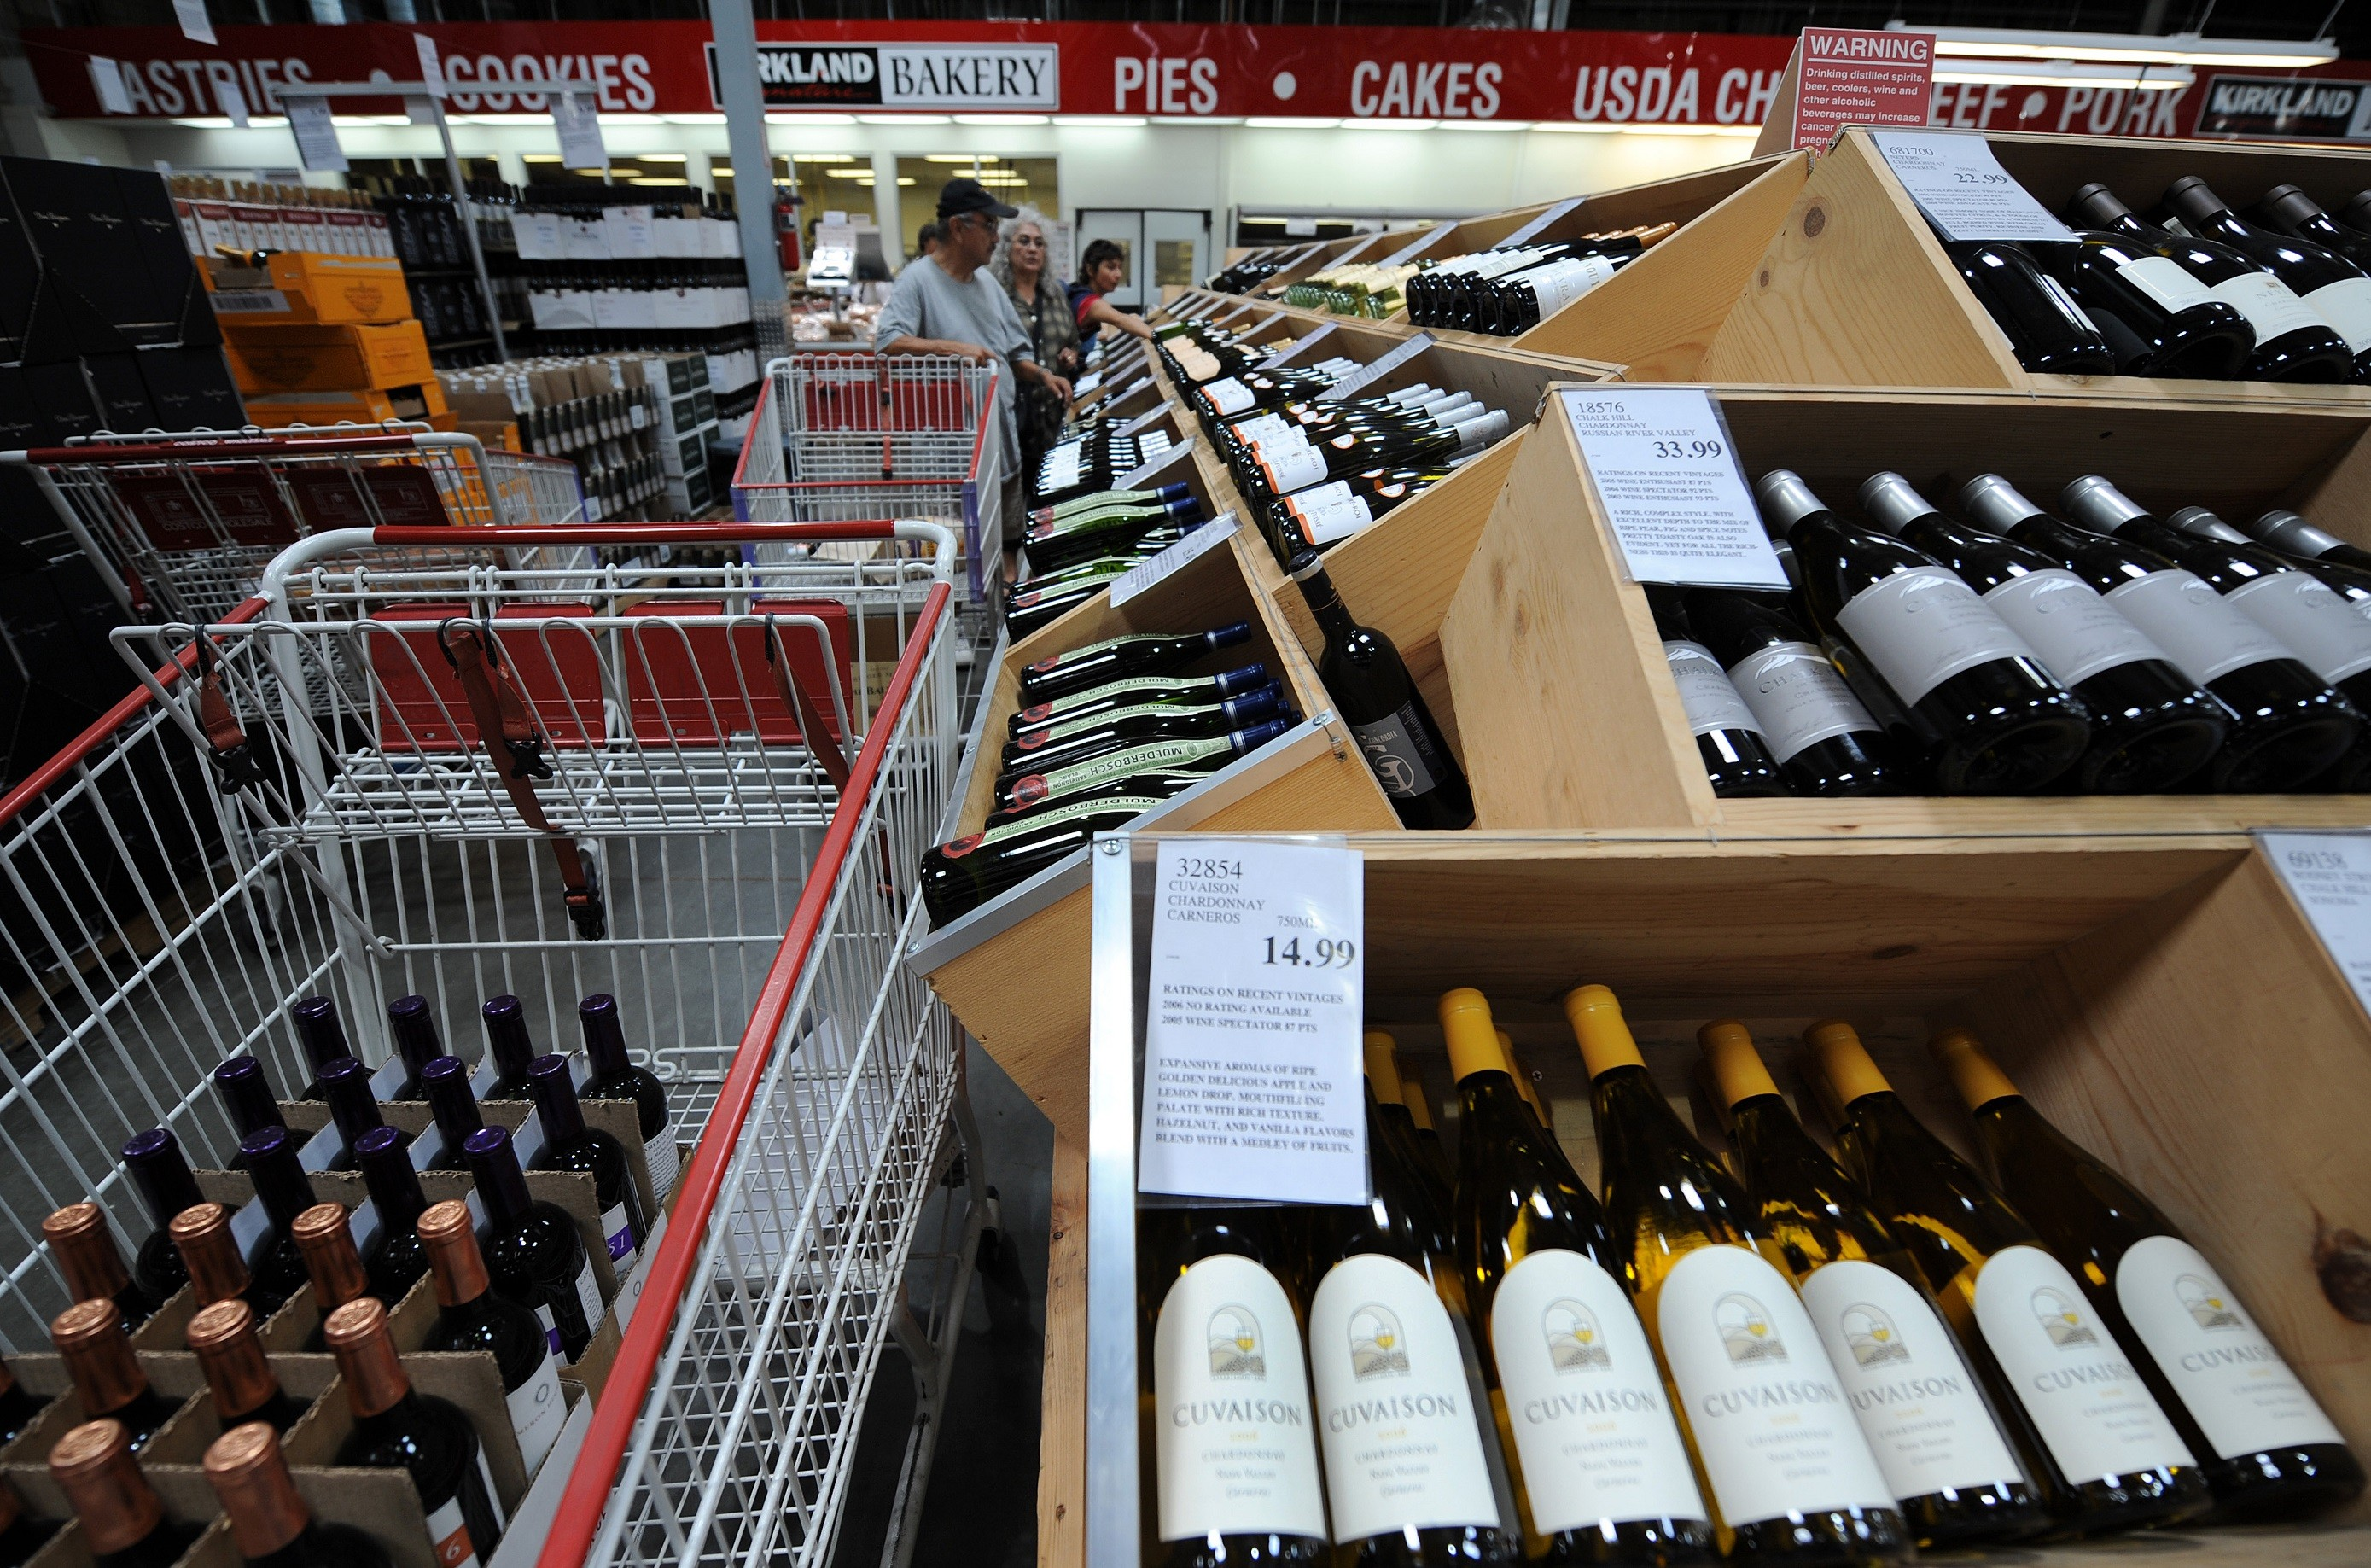 Best Costco Wines 2019 These Are the Best Wines You Can Buy at Costco